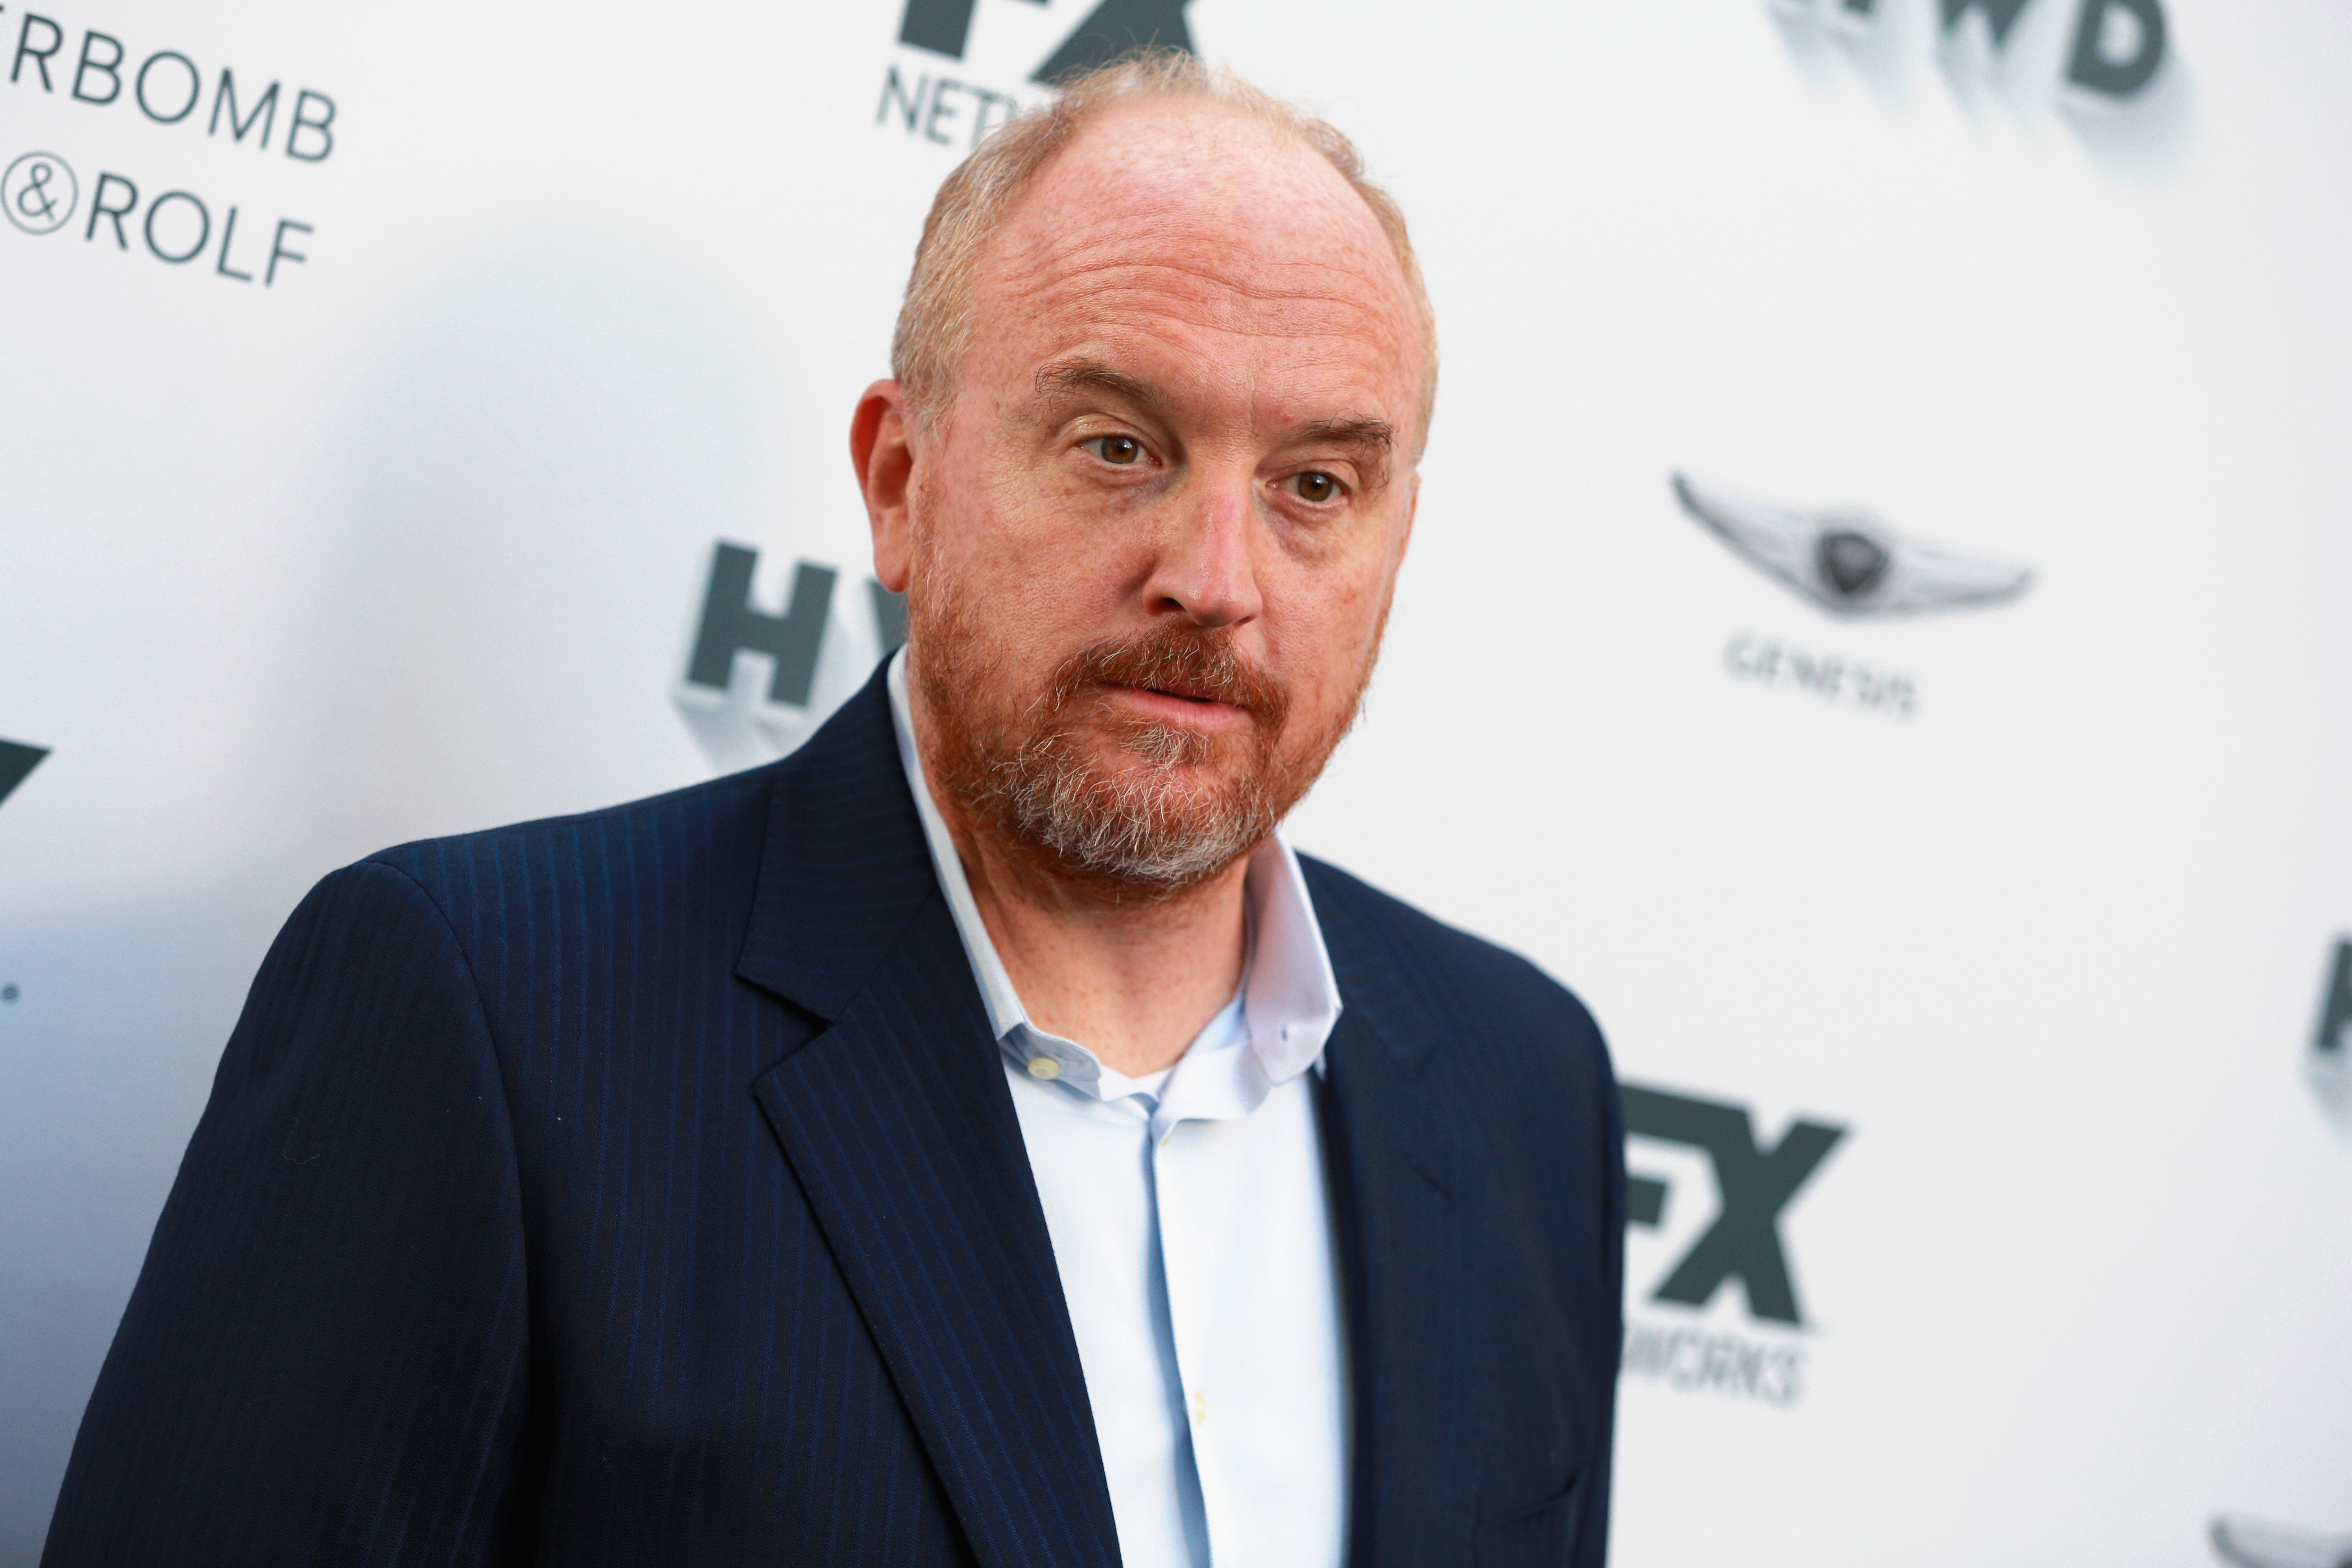 CENTURY CITY, CA - SEPTEMBER 16:  Louis C.K. attends FX and Vanity Fair Emmy Celebration at Craft on September 16, 2017 in Century City, California.  (Photo by Rich Fury/Getty Images)